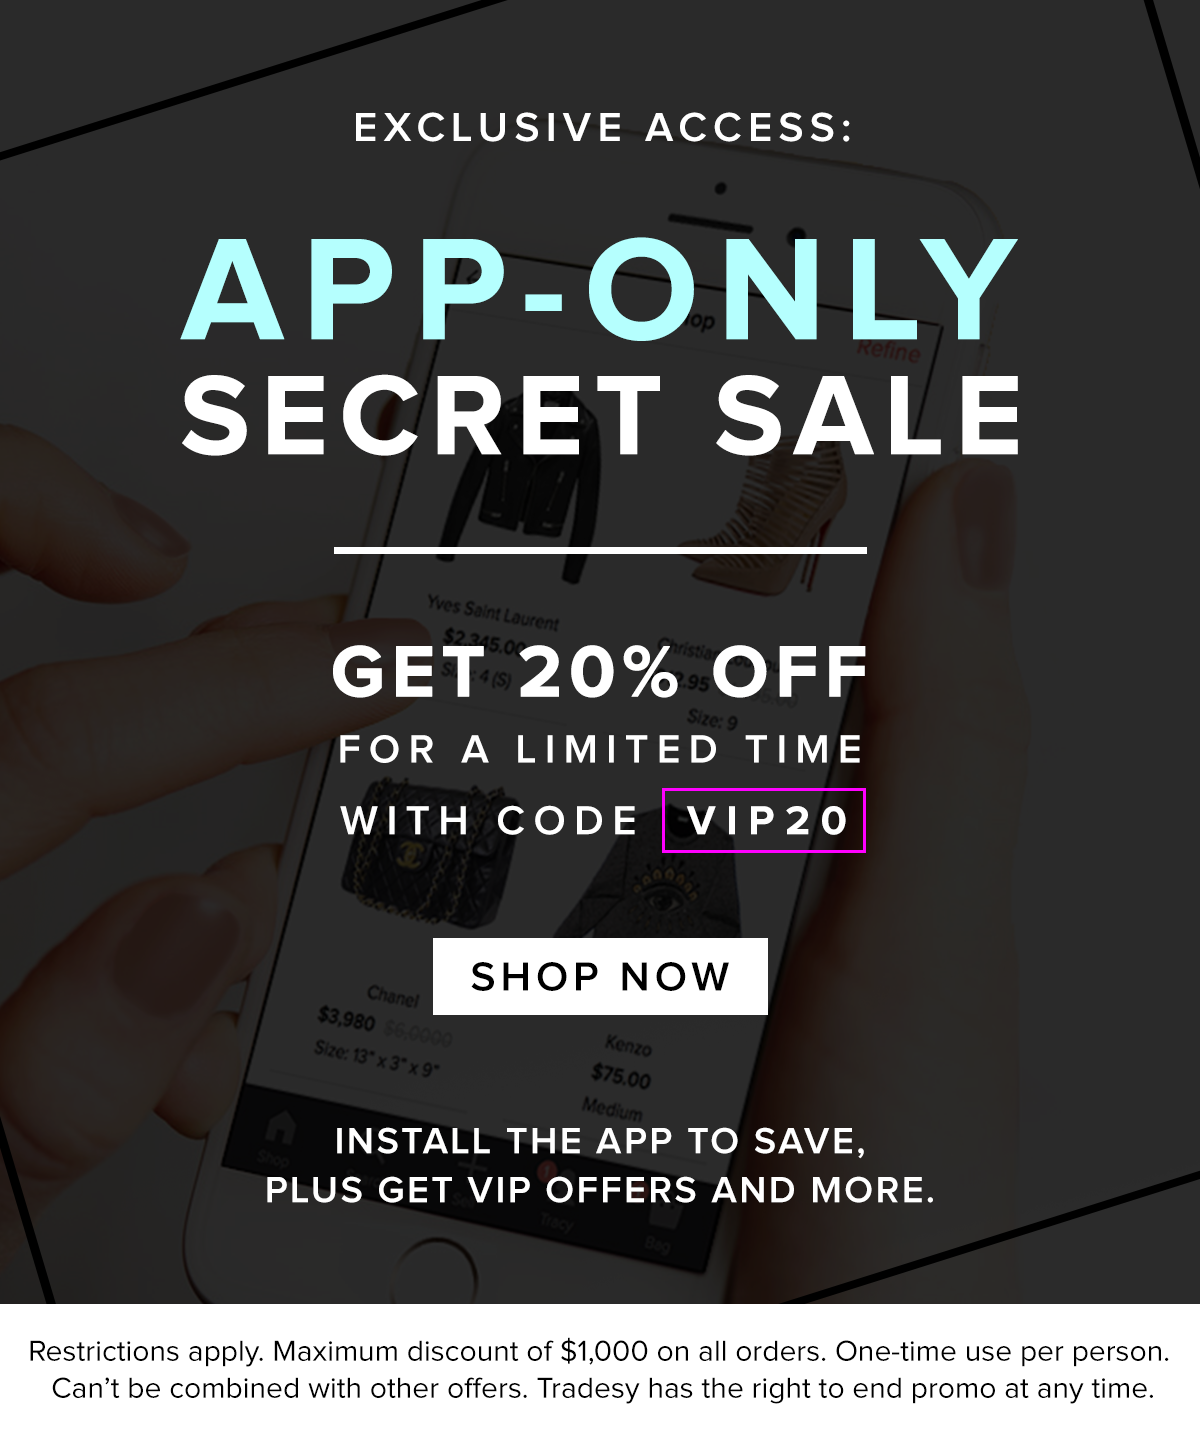 44c5a99c7 Tradesy: Exclusive App-Only Secret Sale   Milled